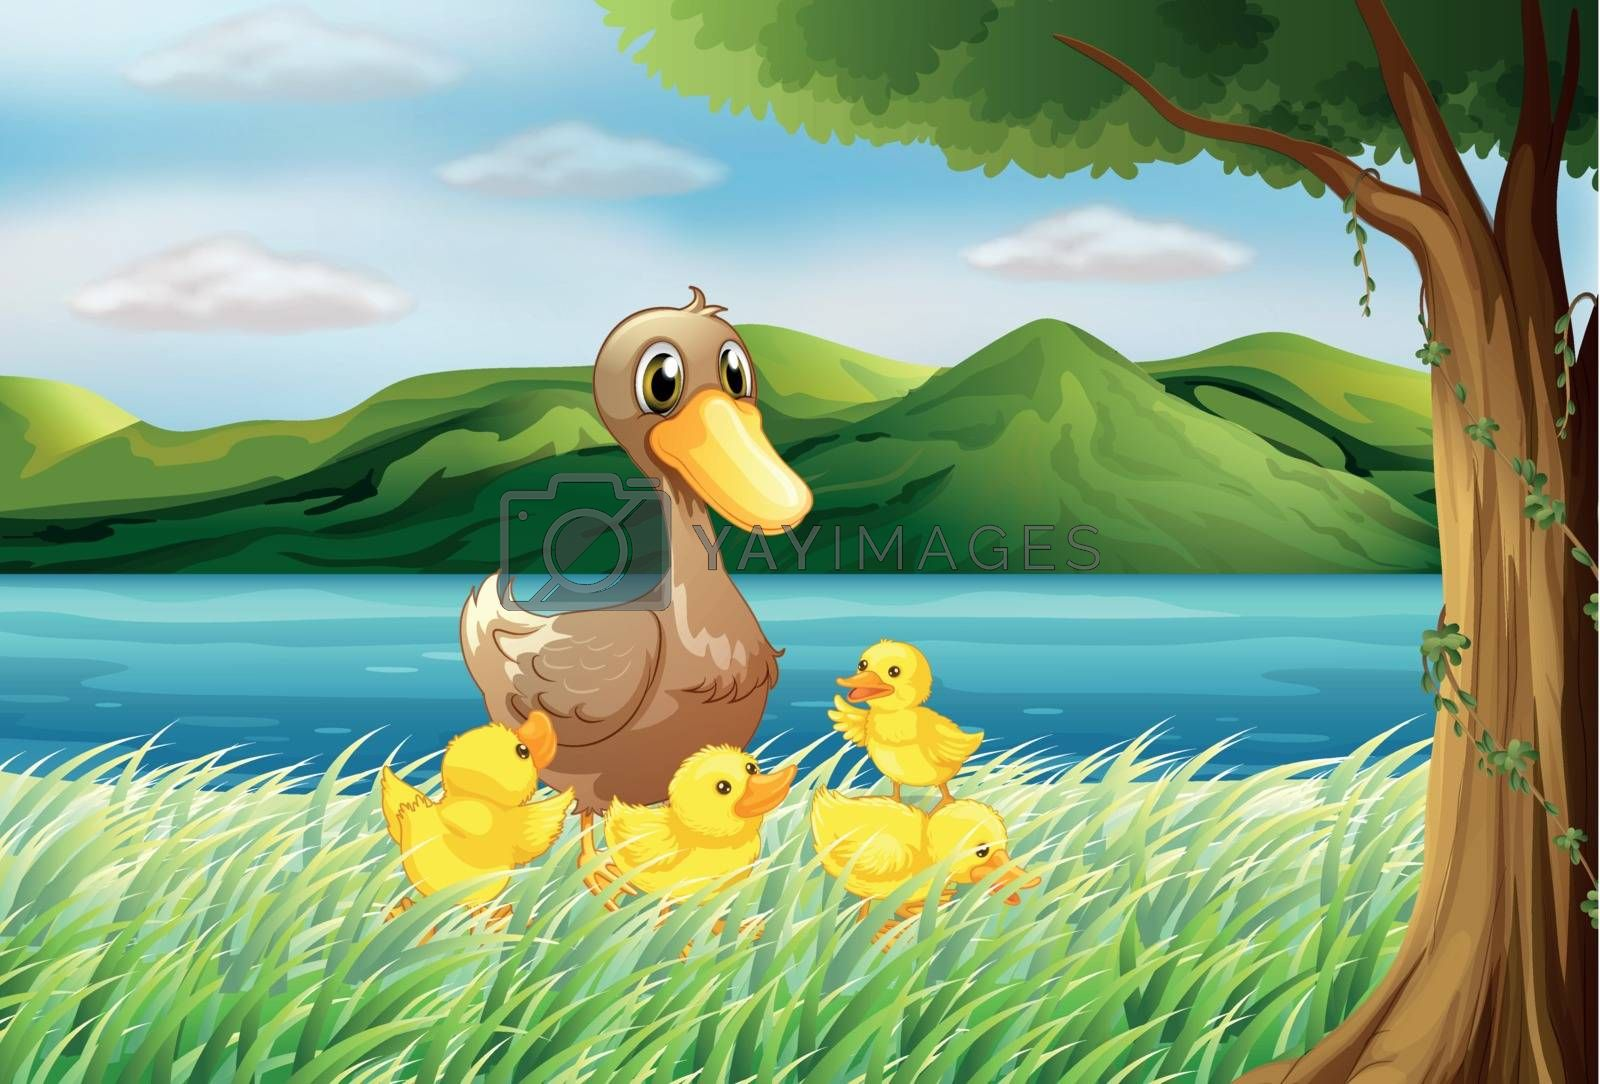 Illustration of the five ducks at the riverbank